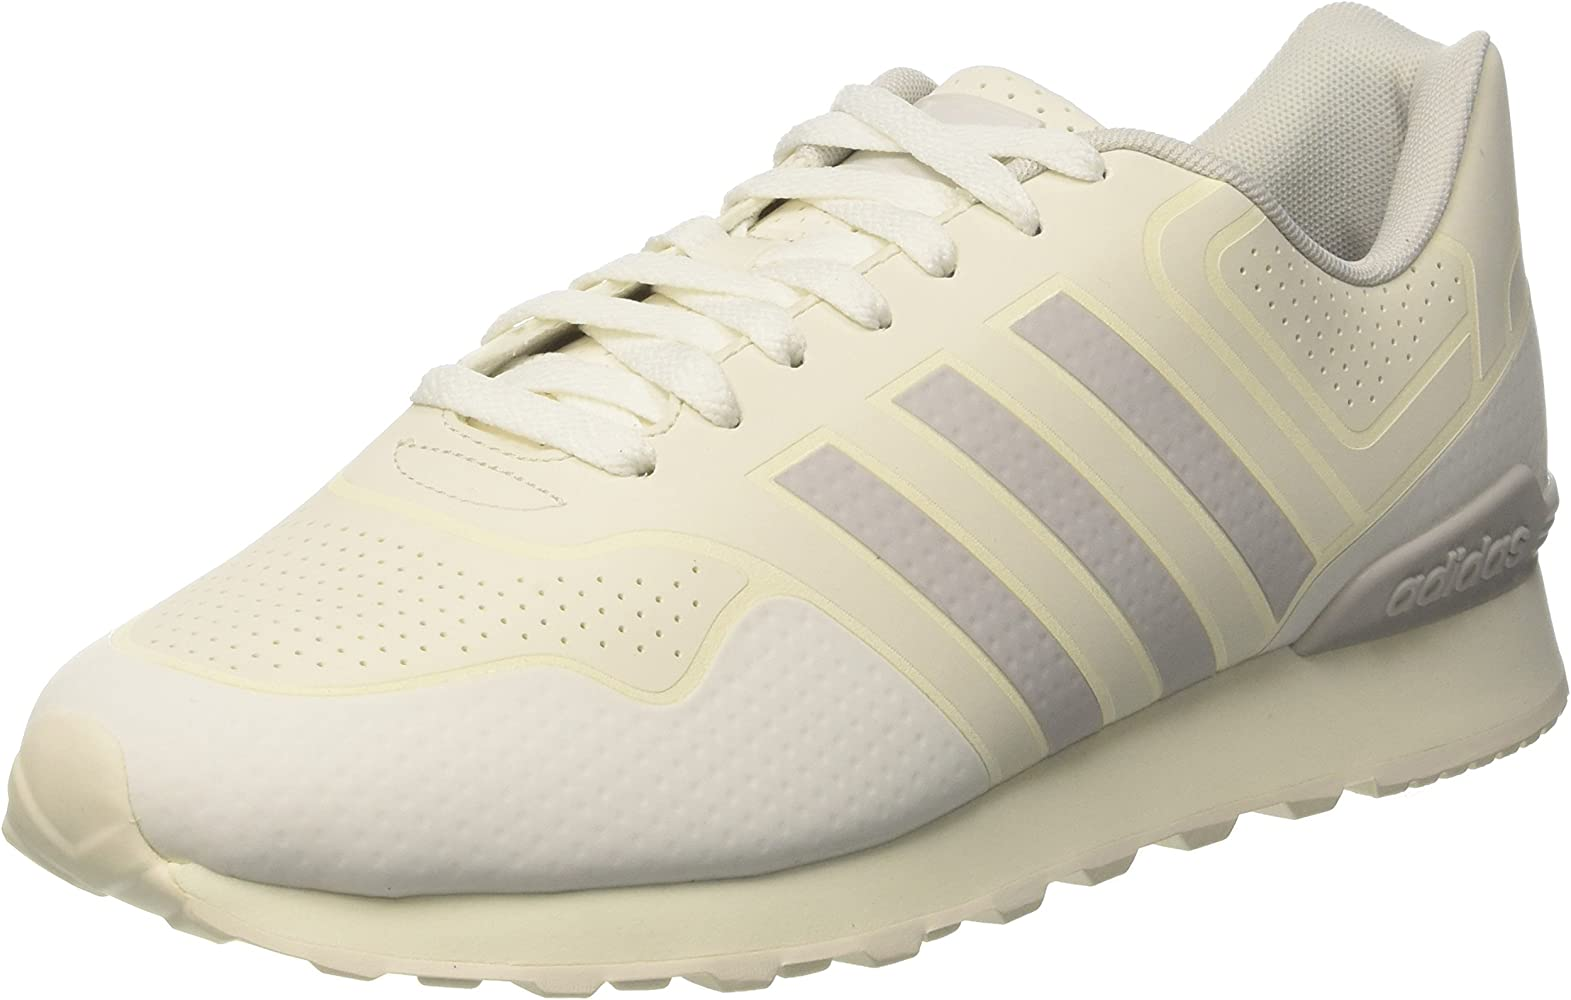 White HommeBlanc 10k CasualSneakers Basses Adidas Grey Onechalk vnmNy0w8OP